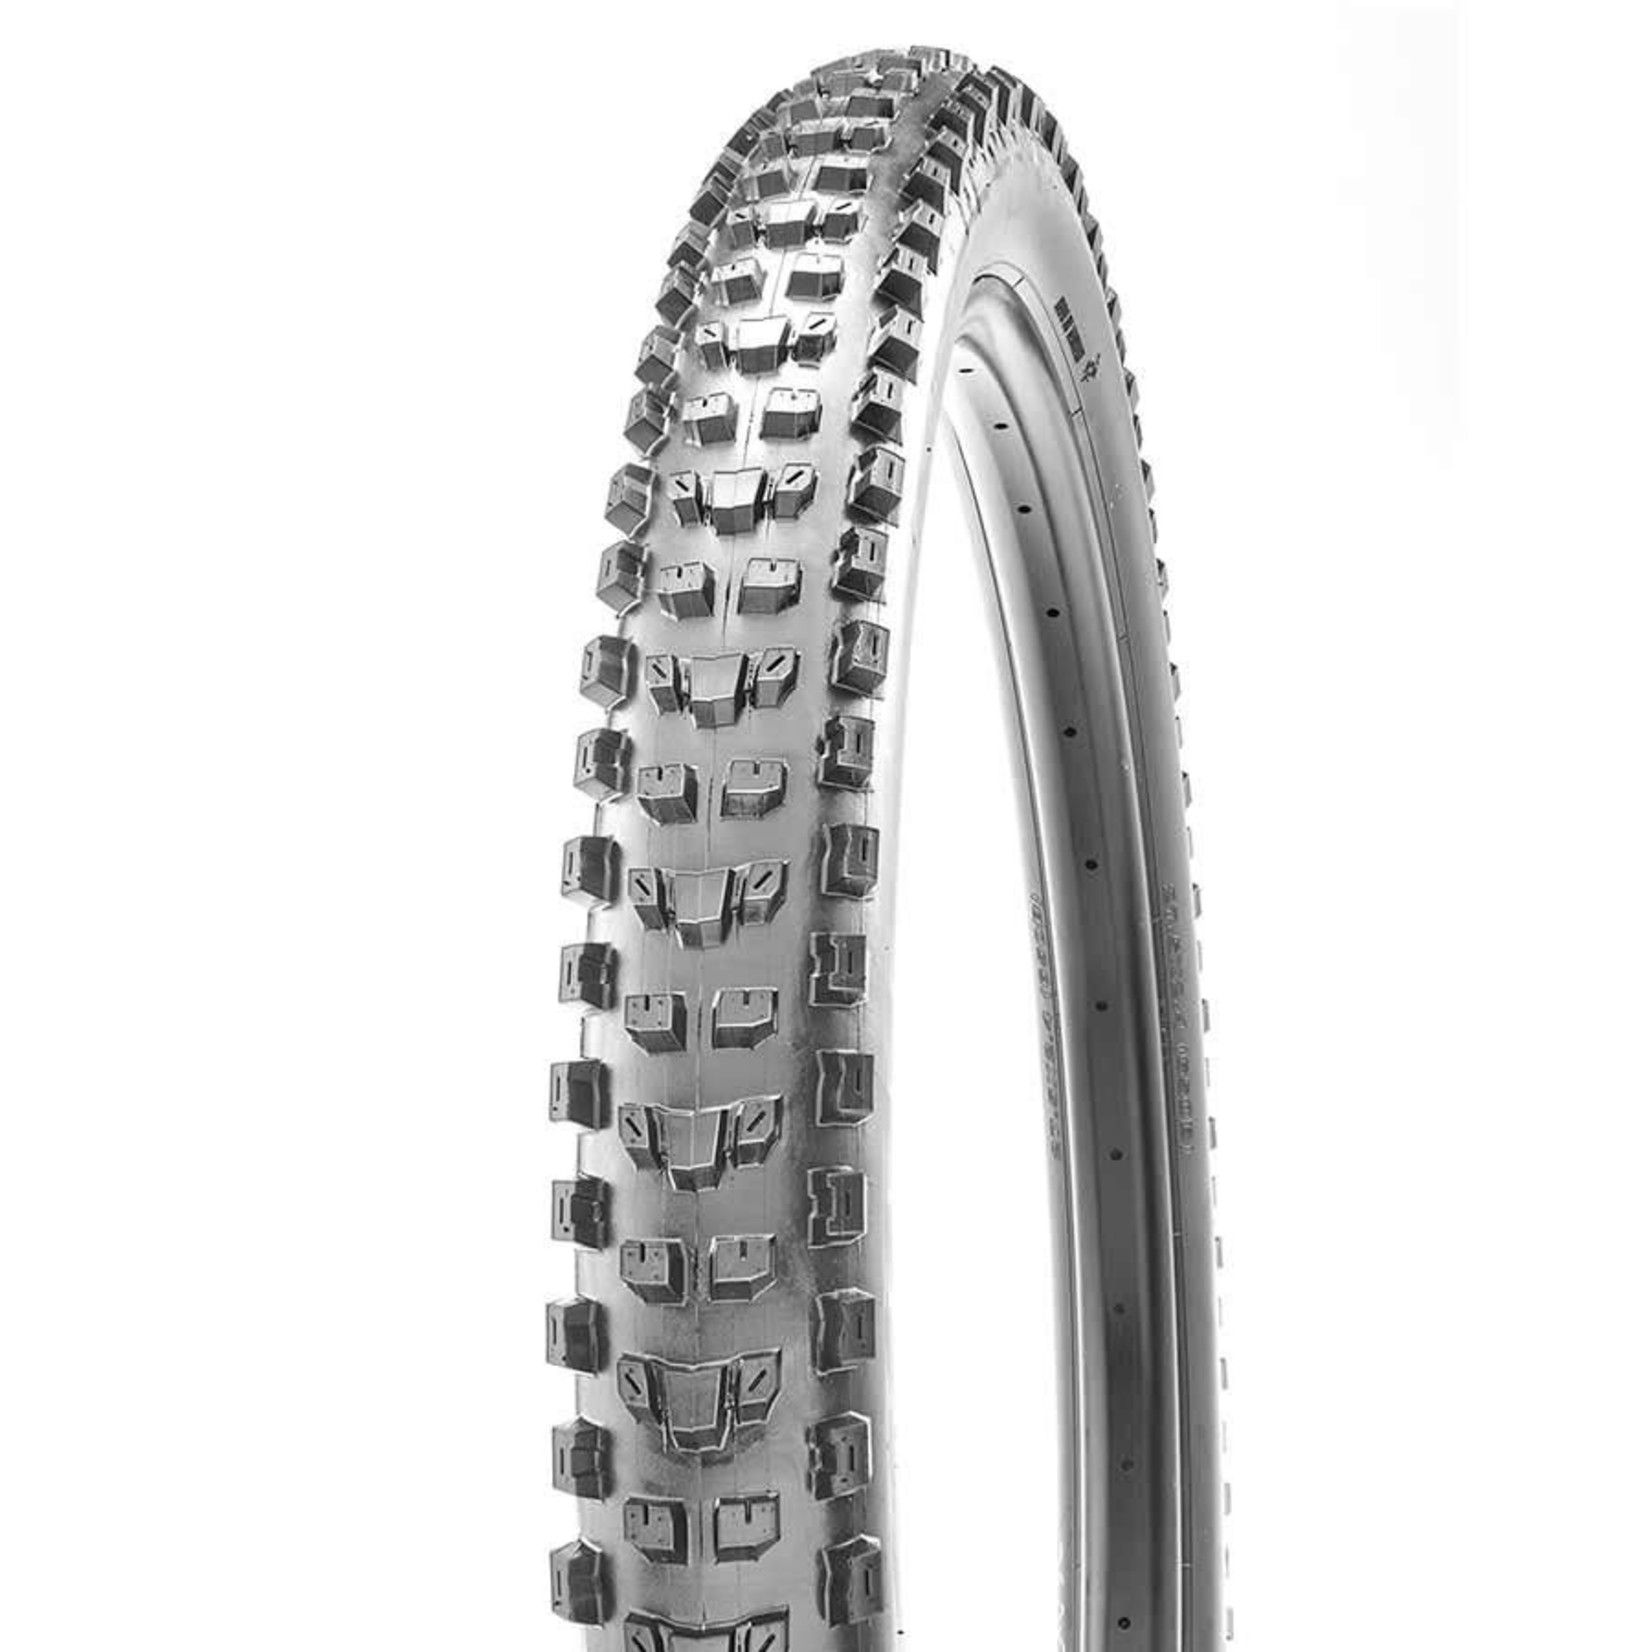 Maxxis Dissector, Pneu, 29''x2.40, Pliable, Tubeless Ready, 3C Maxx Grip, 2-ply, Wide Trail, 60TPI, Noir